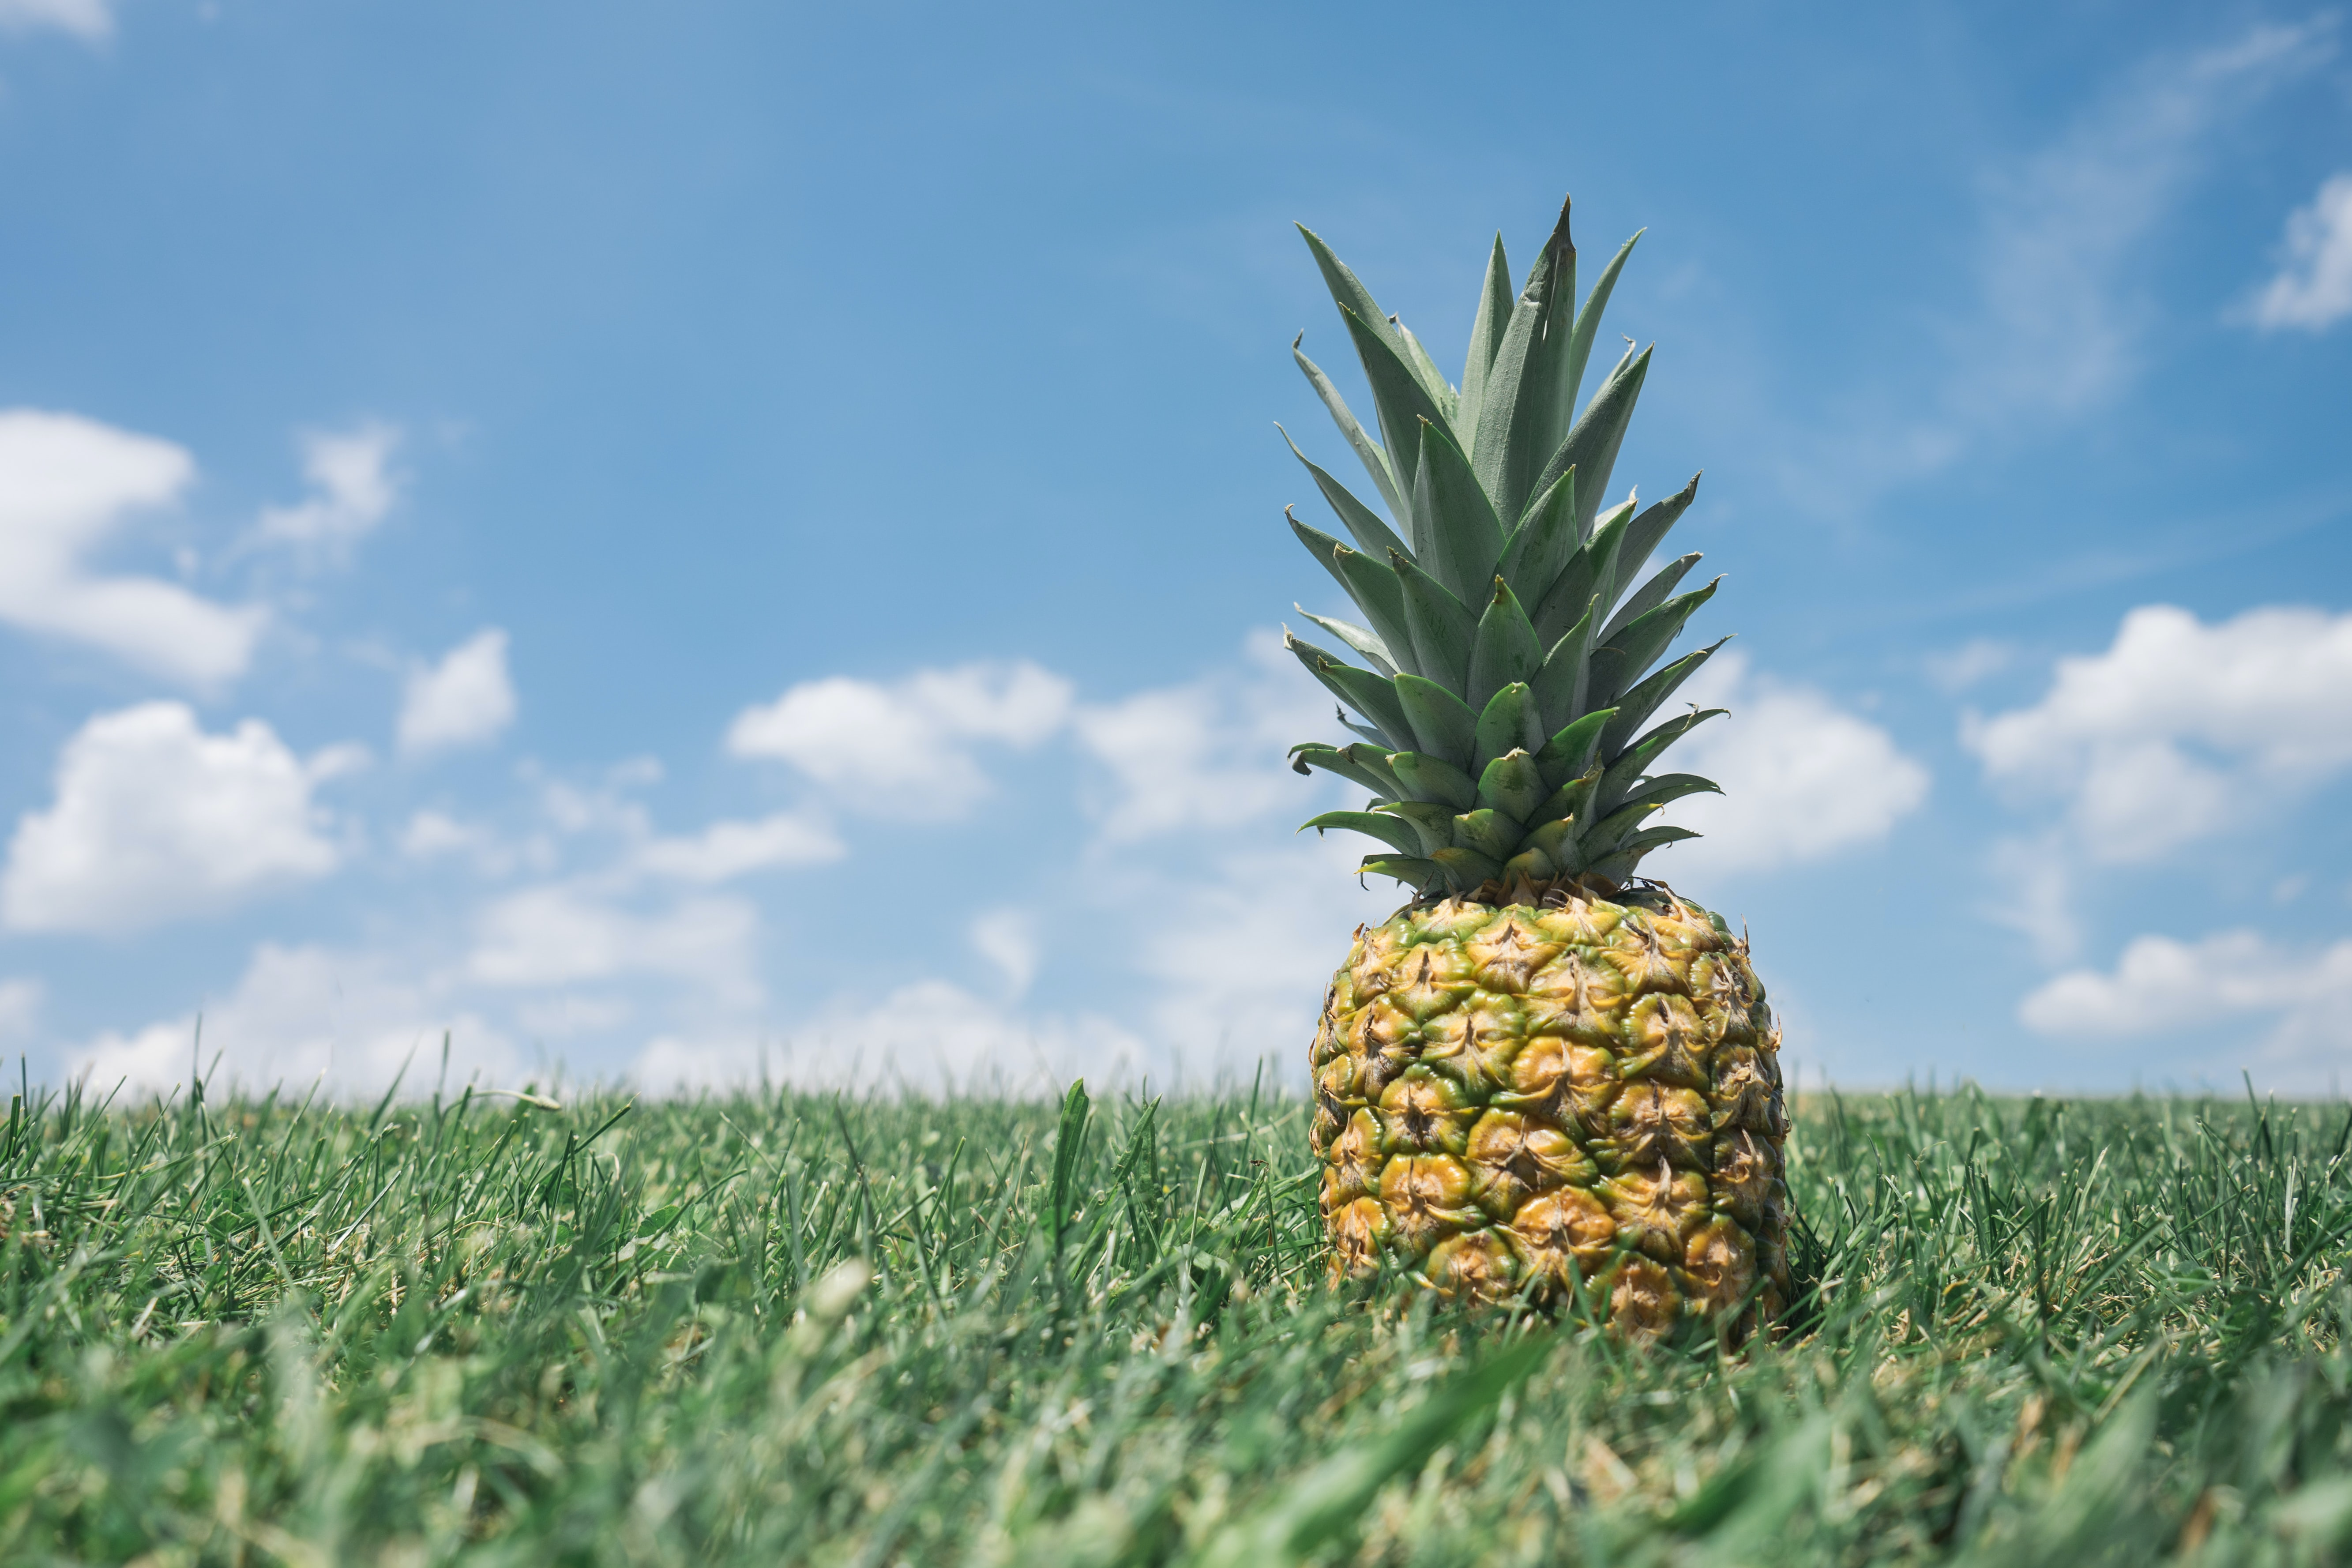 A lone pineapple on the grass.